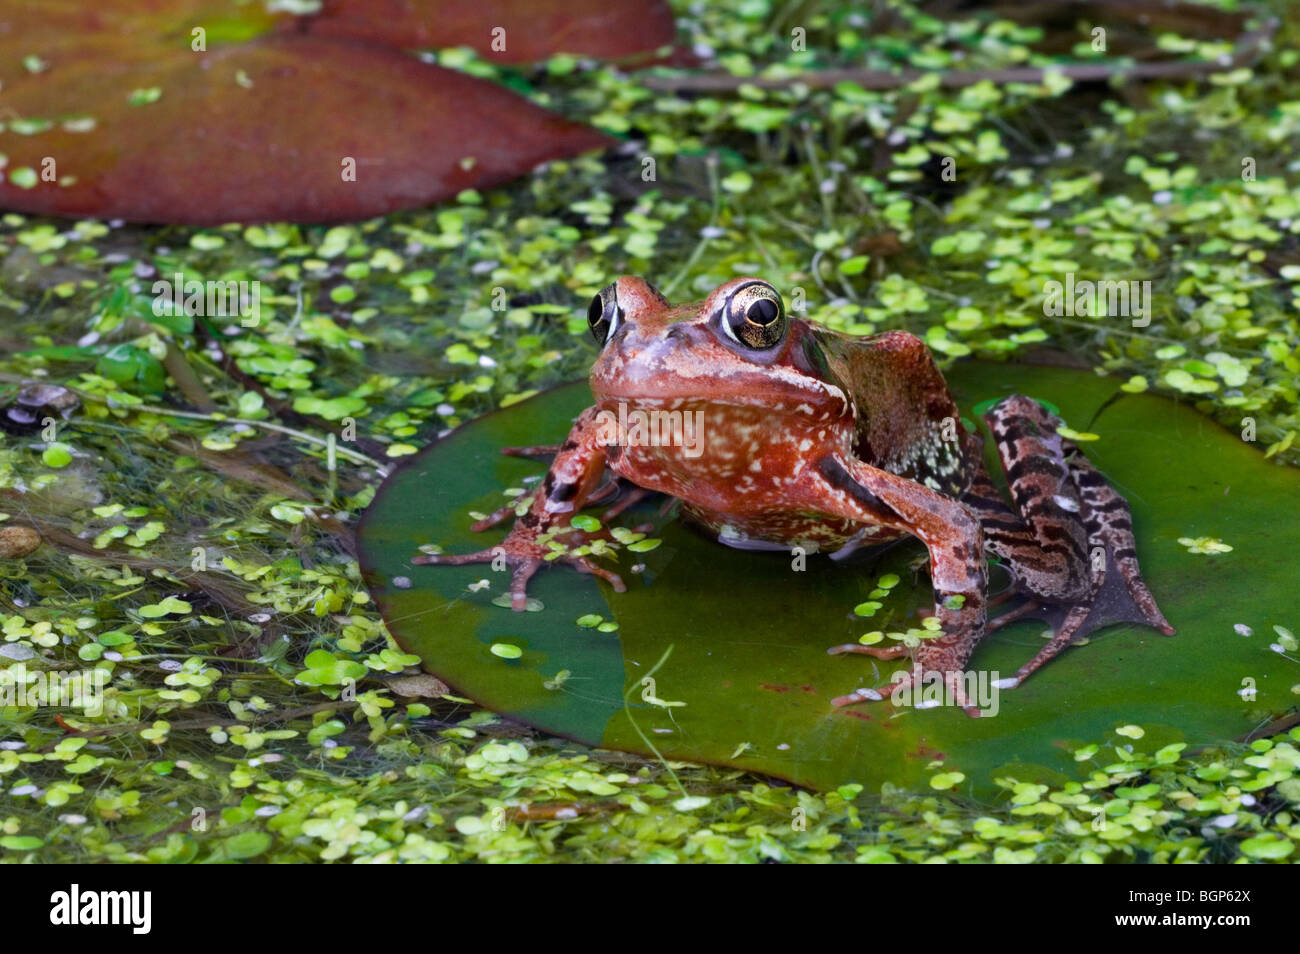 European common brown frog (Rana temporaria) juvenile sitting on water lily pad amongst duckweed in pond - Stock Image